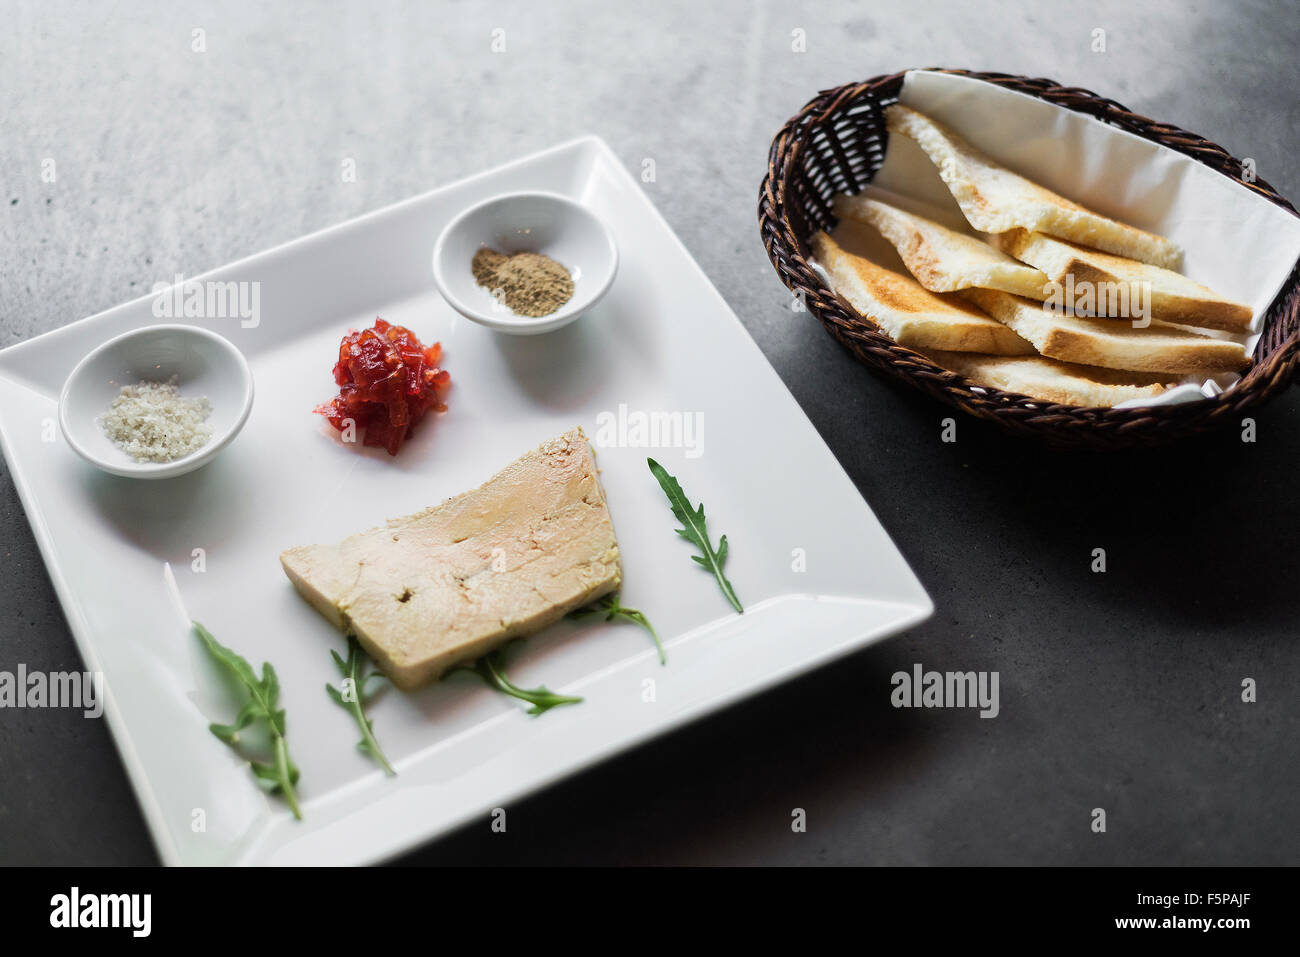 french traditional foie gras pate and toast starter set stock photo royalty free image. Black Bedroom Furniture Sets. Home Design Ideas